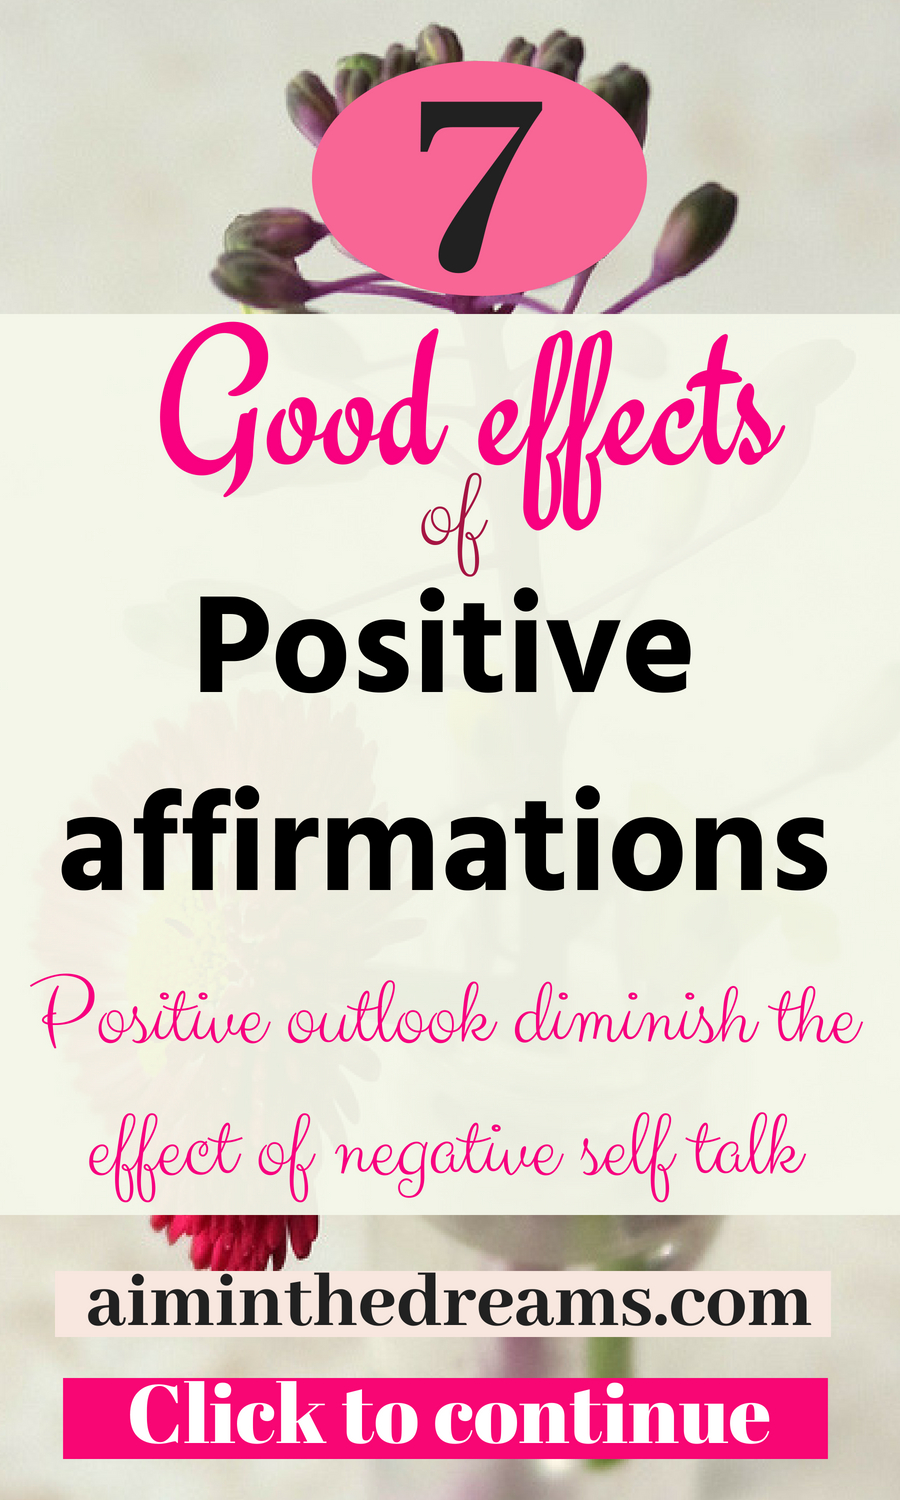 Positive affirmations are necessary if you want to diminish the effect of negative self talk. Positive outlook for life helps in living better and happy life.